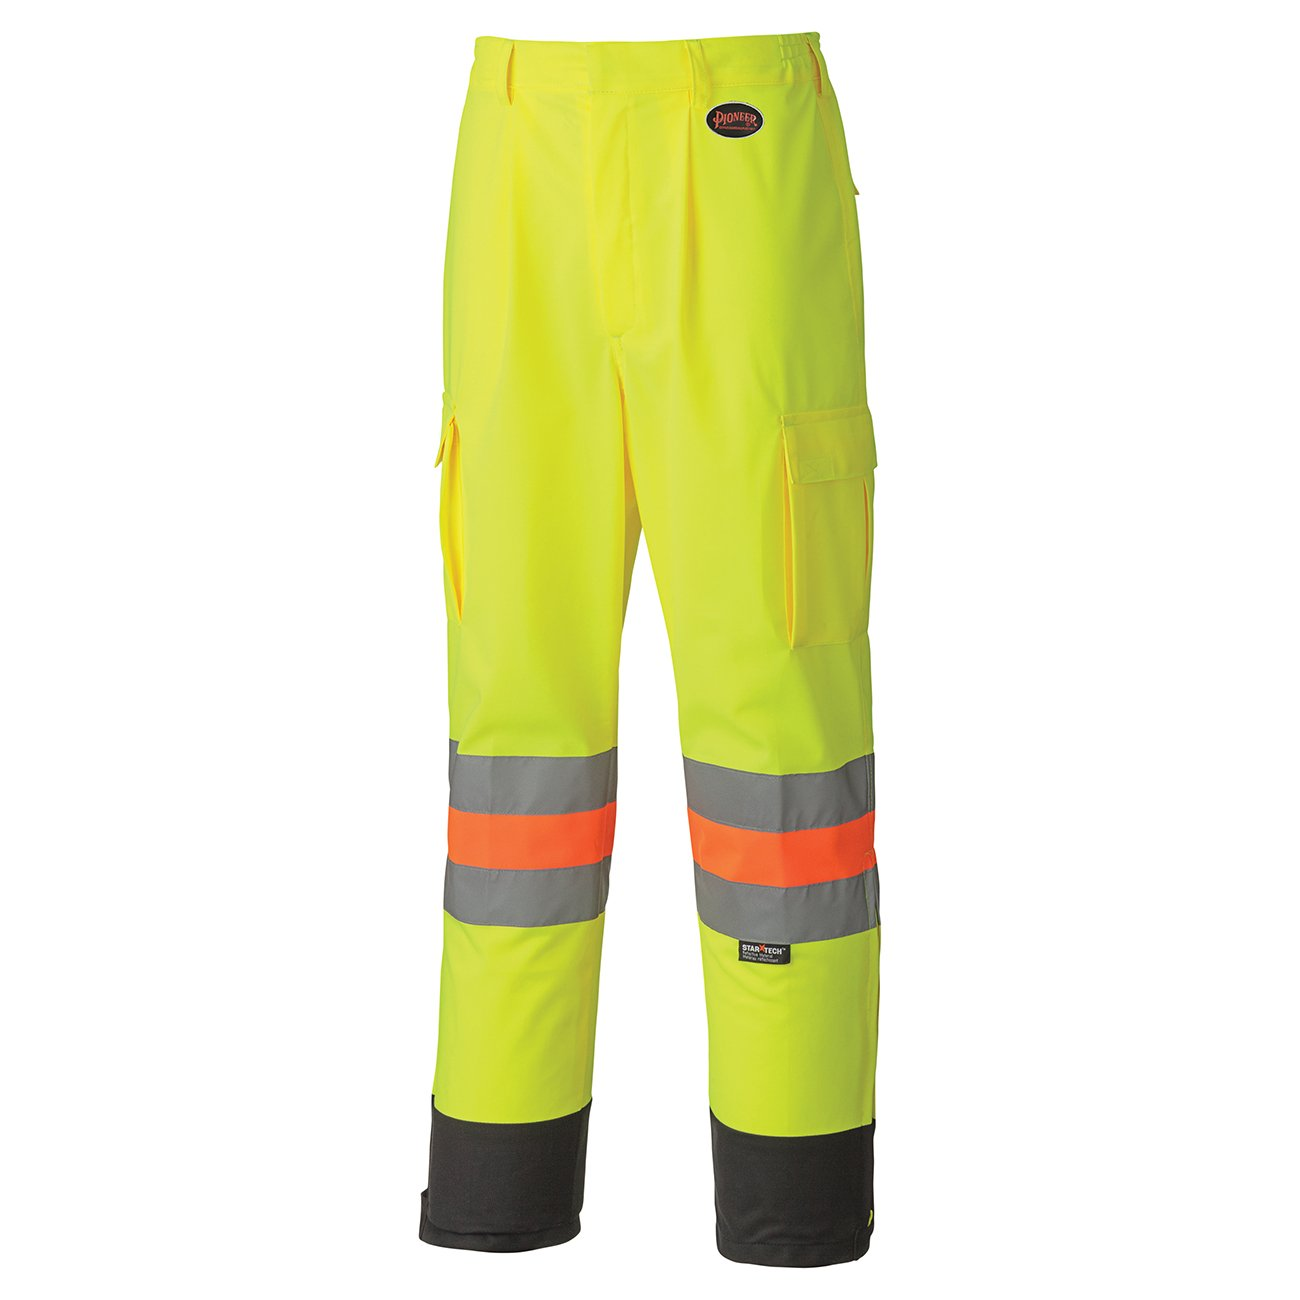 Pioneer Hi-Viz Breathable Traffic Control Safety Pant